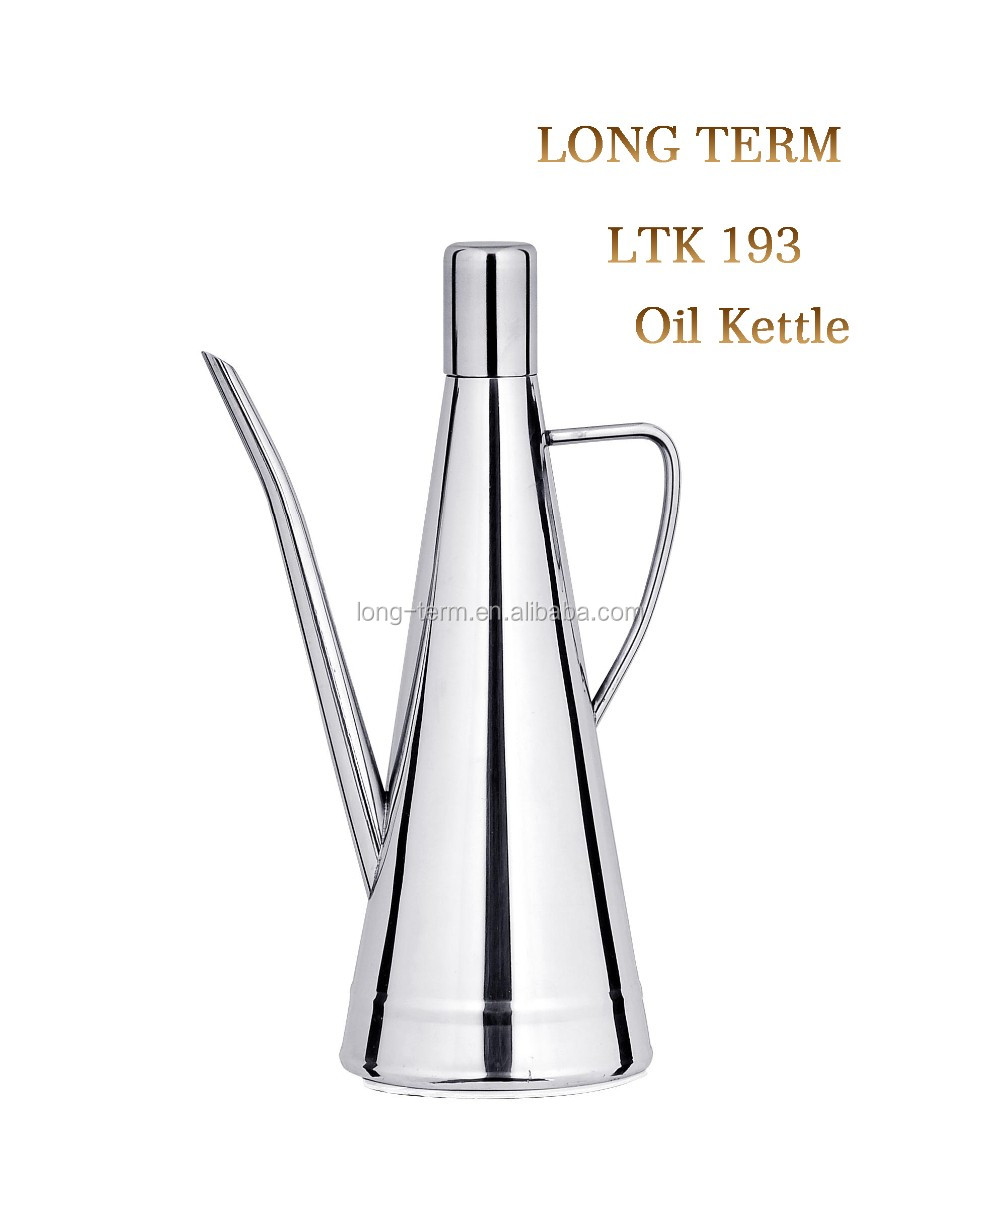 LTK194 Factory Direct Price Home Use Oil Kettle